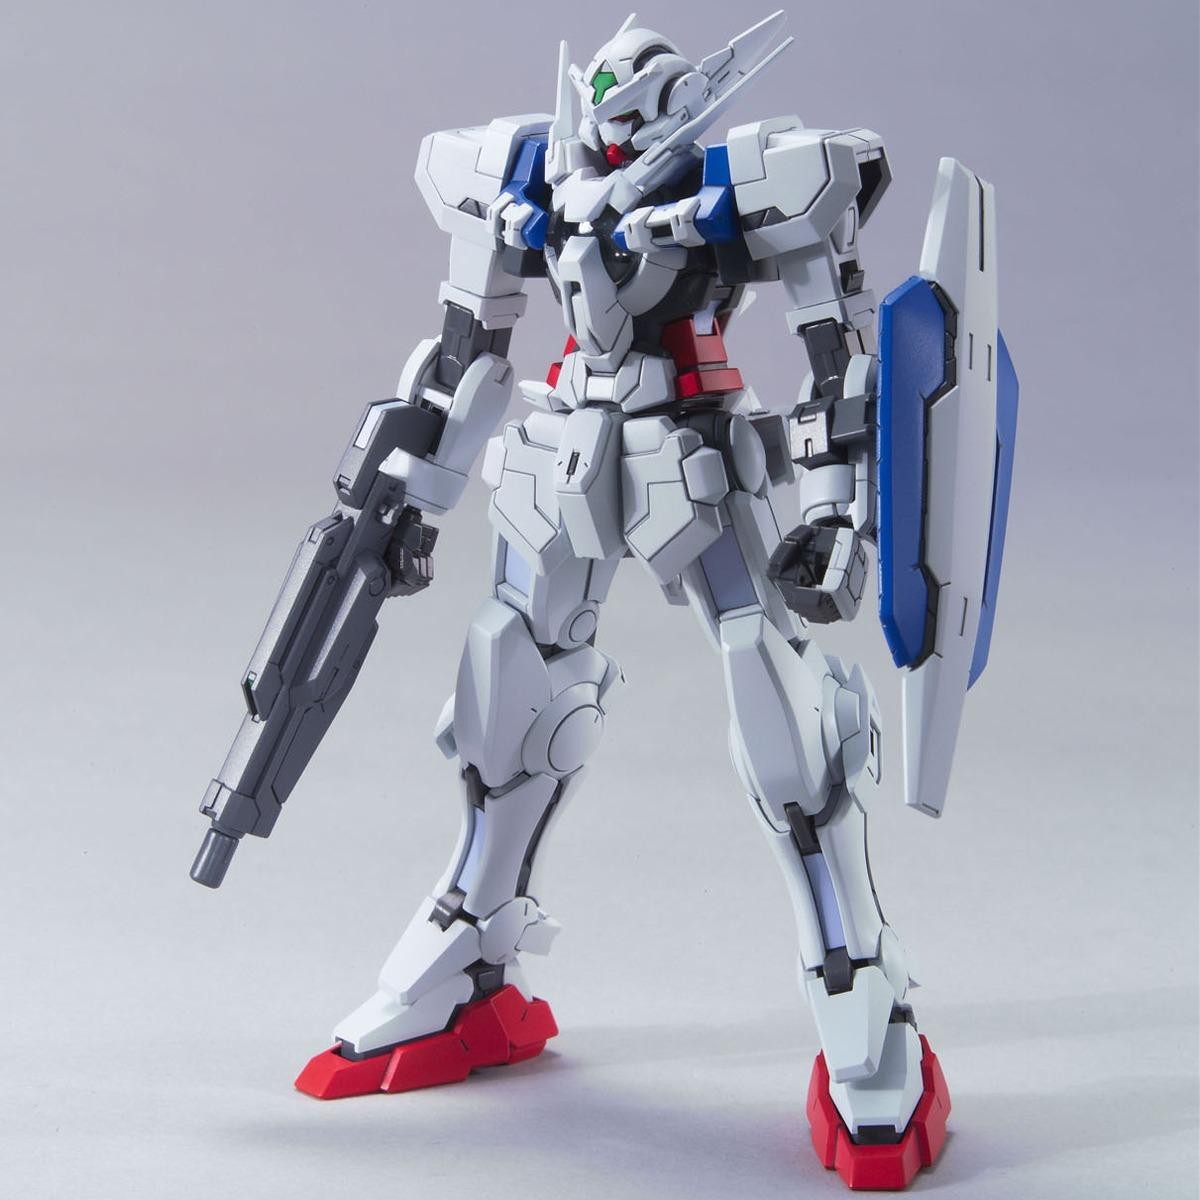 Sale Bandai Hg 1 144 Gundam Astraea Online On Singapore